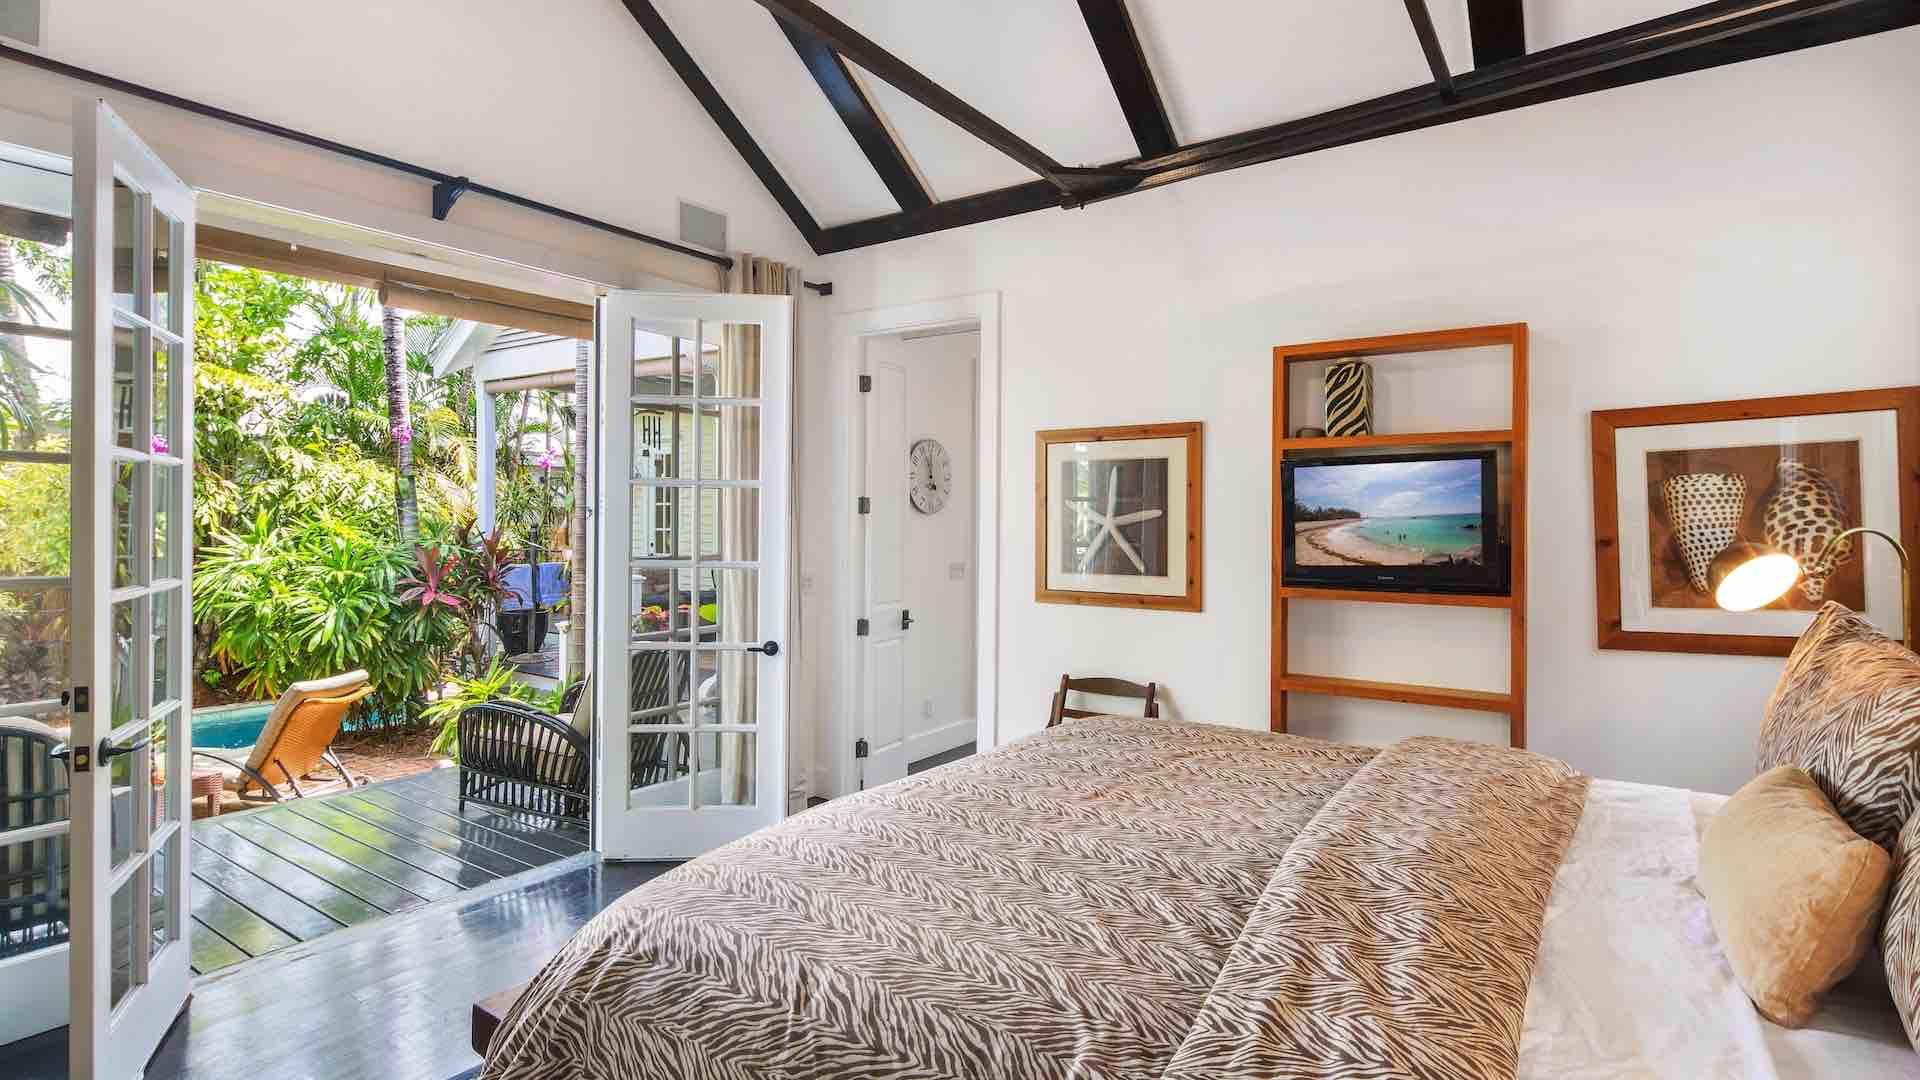 The master bedroom has French doors that open to the pool area...